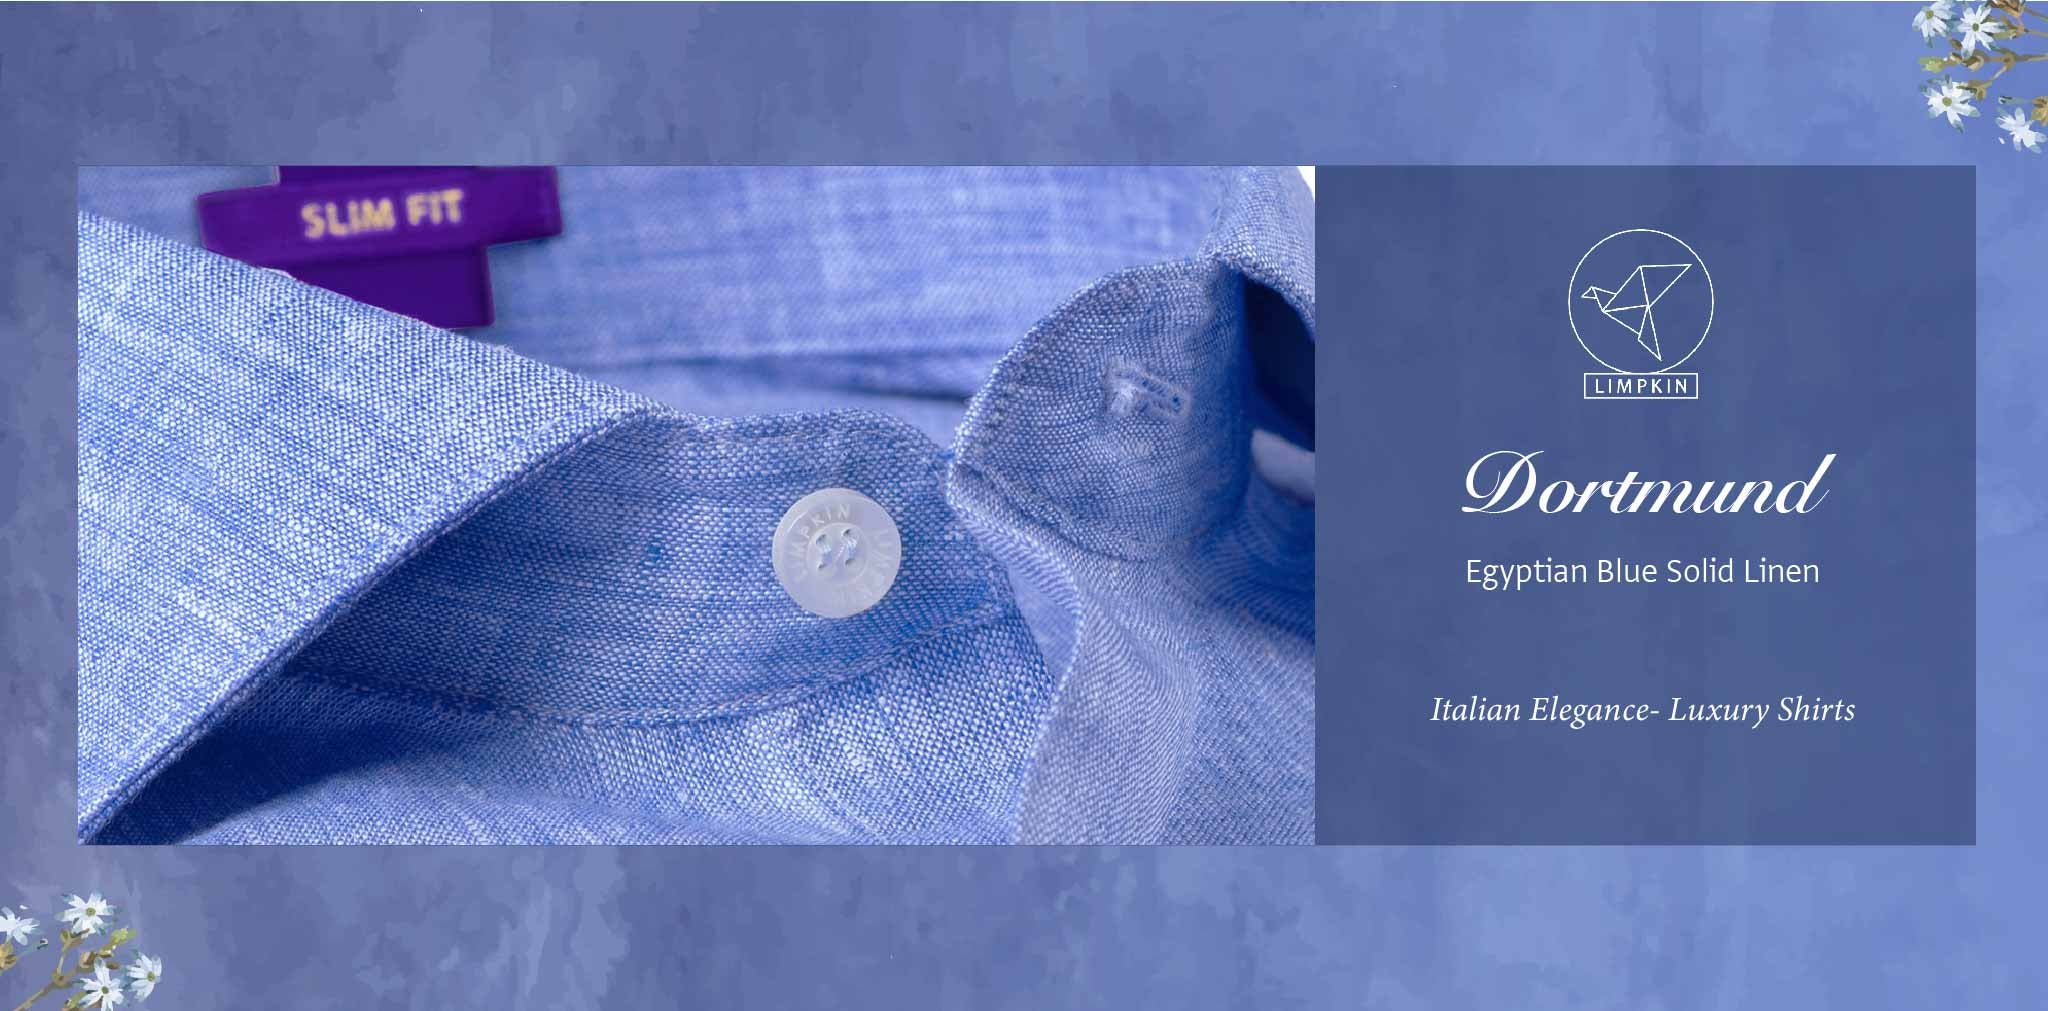 Dortmund- Egyptian Blue Solid Linen- 66's Lea Pure Luxury Linen- Delivery from 19th April - Banner